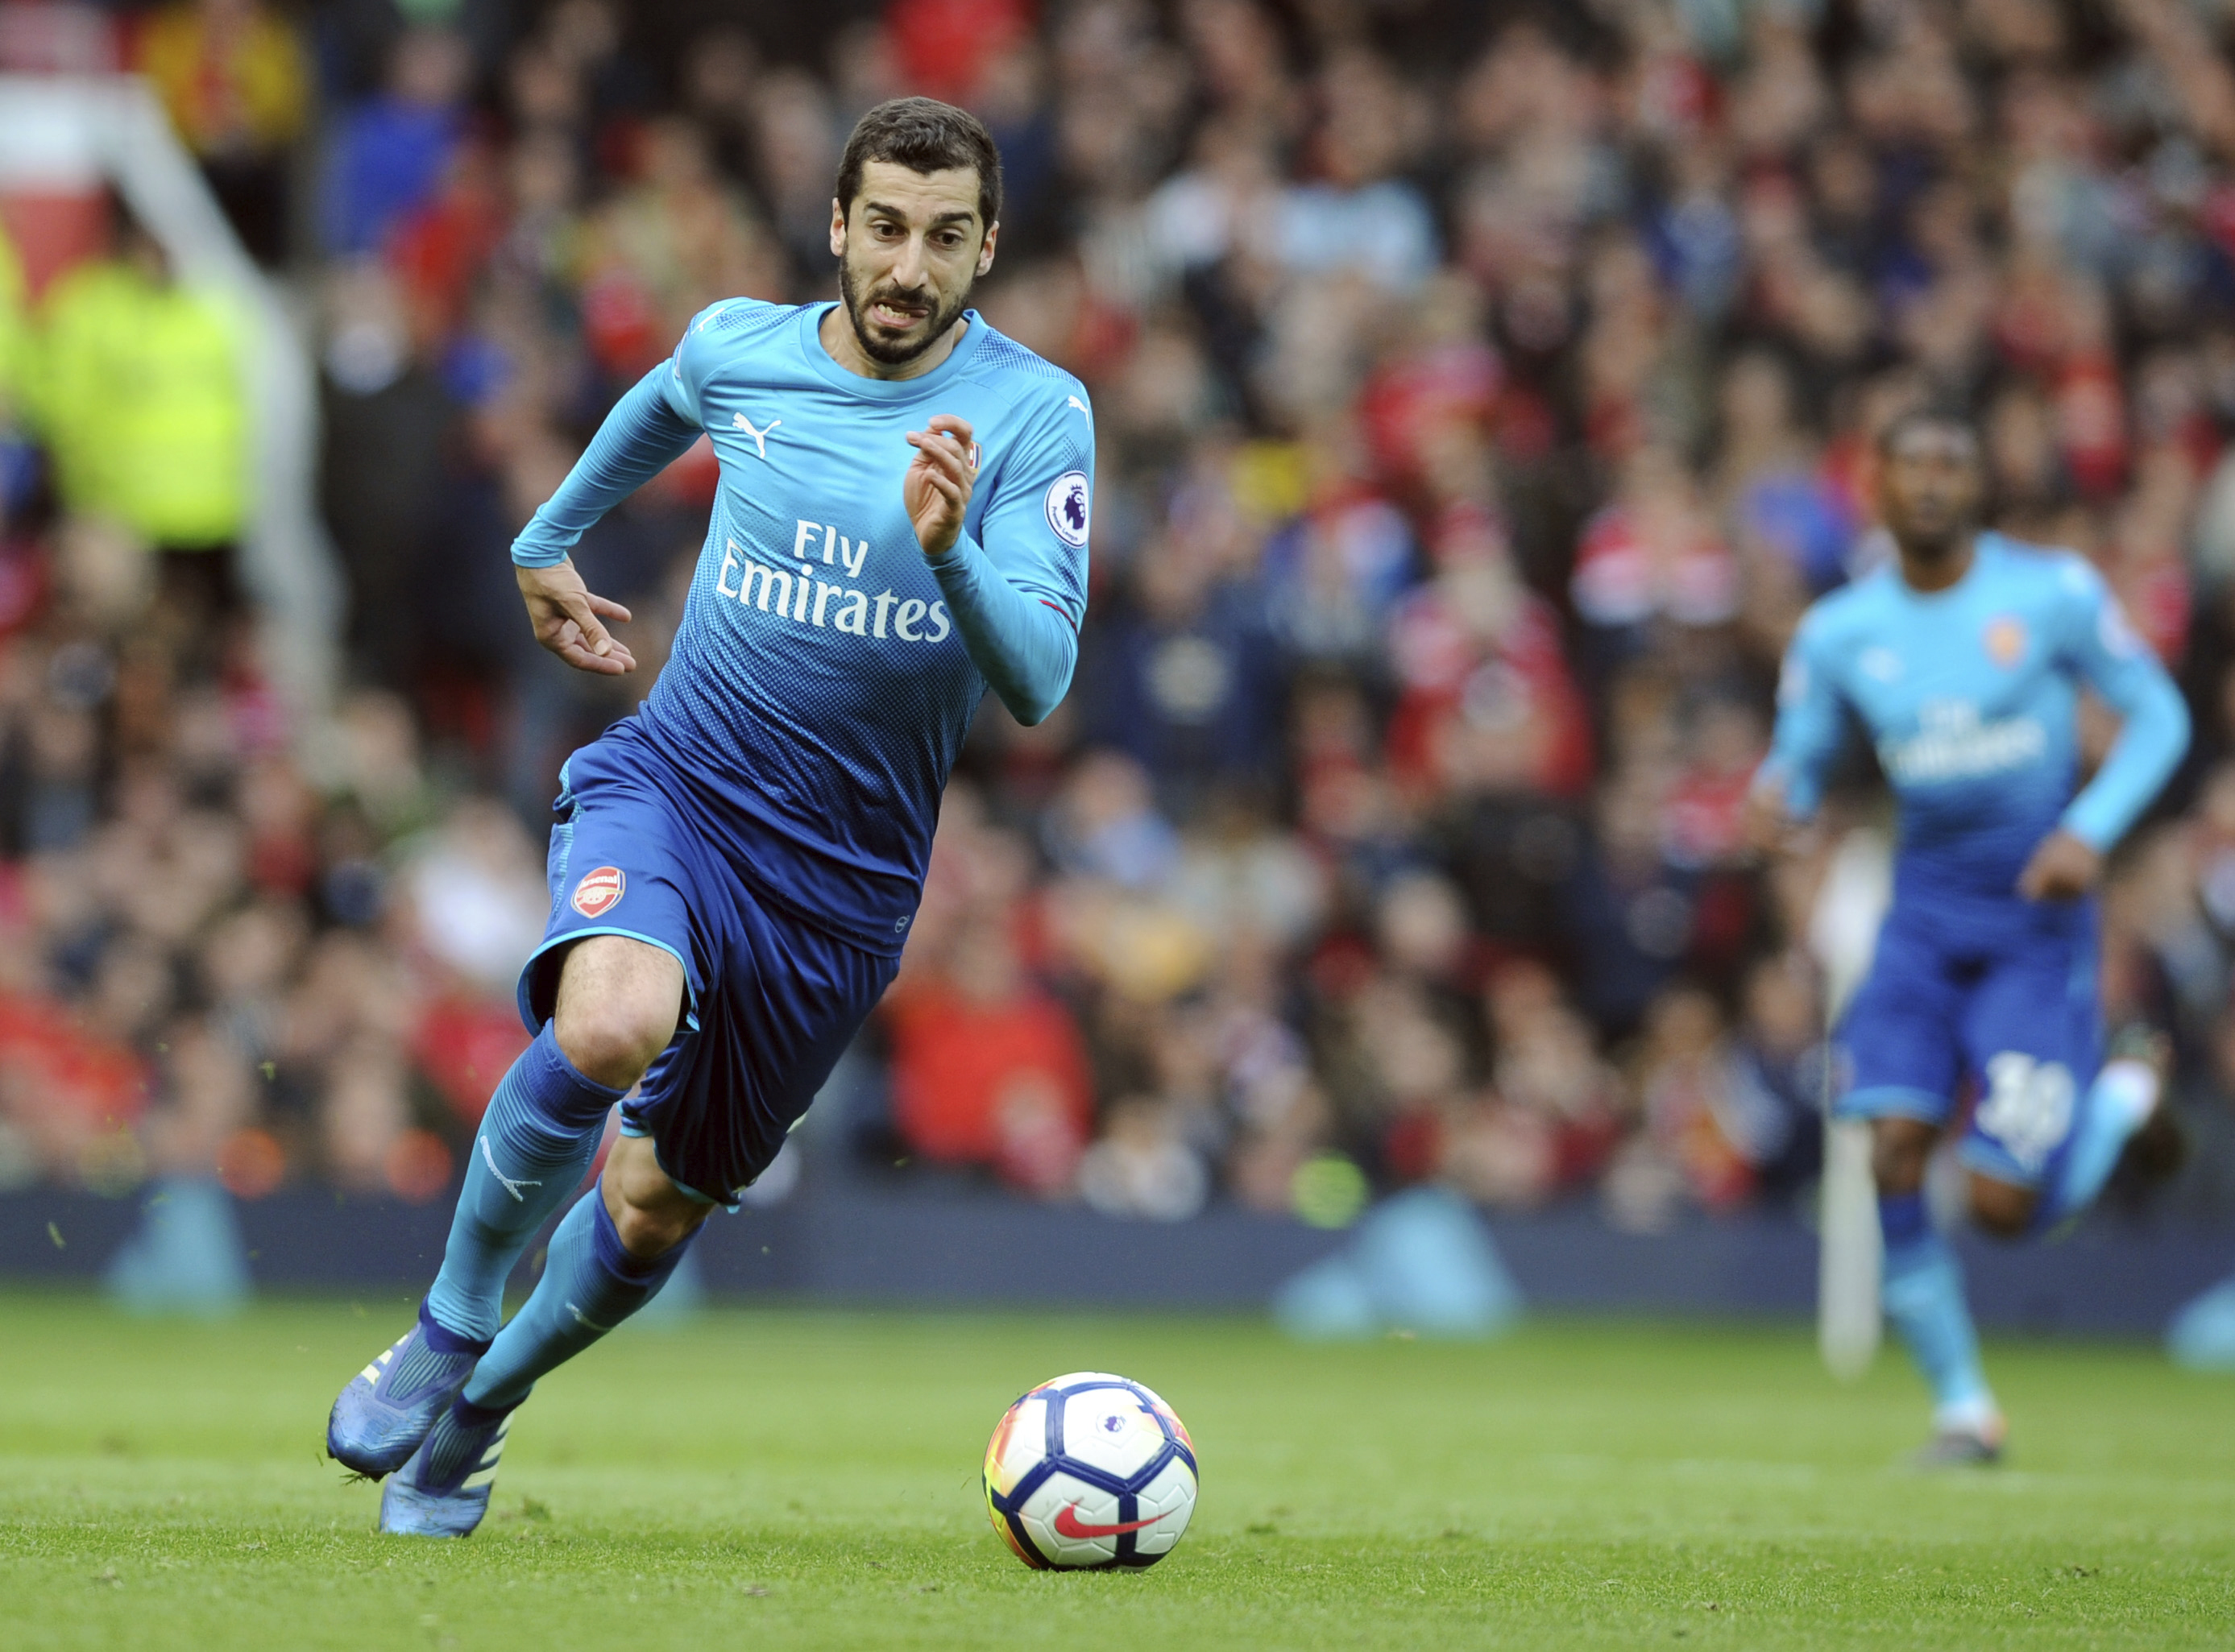 Arsenal playmaker Mkhitaryan sidelined for at least 6 weeks